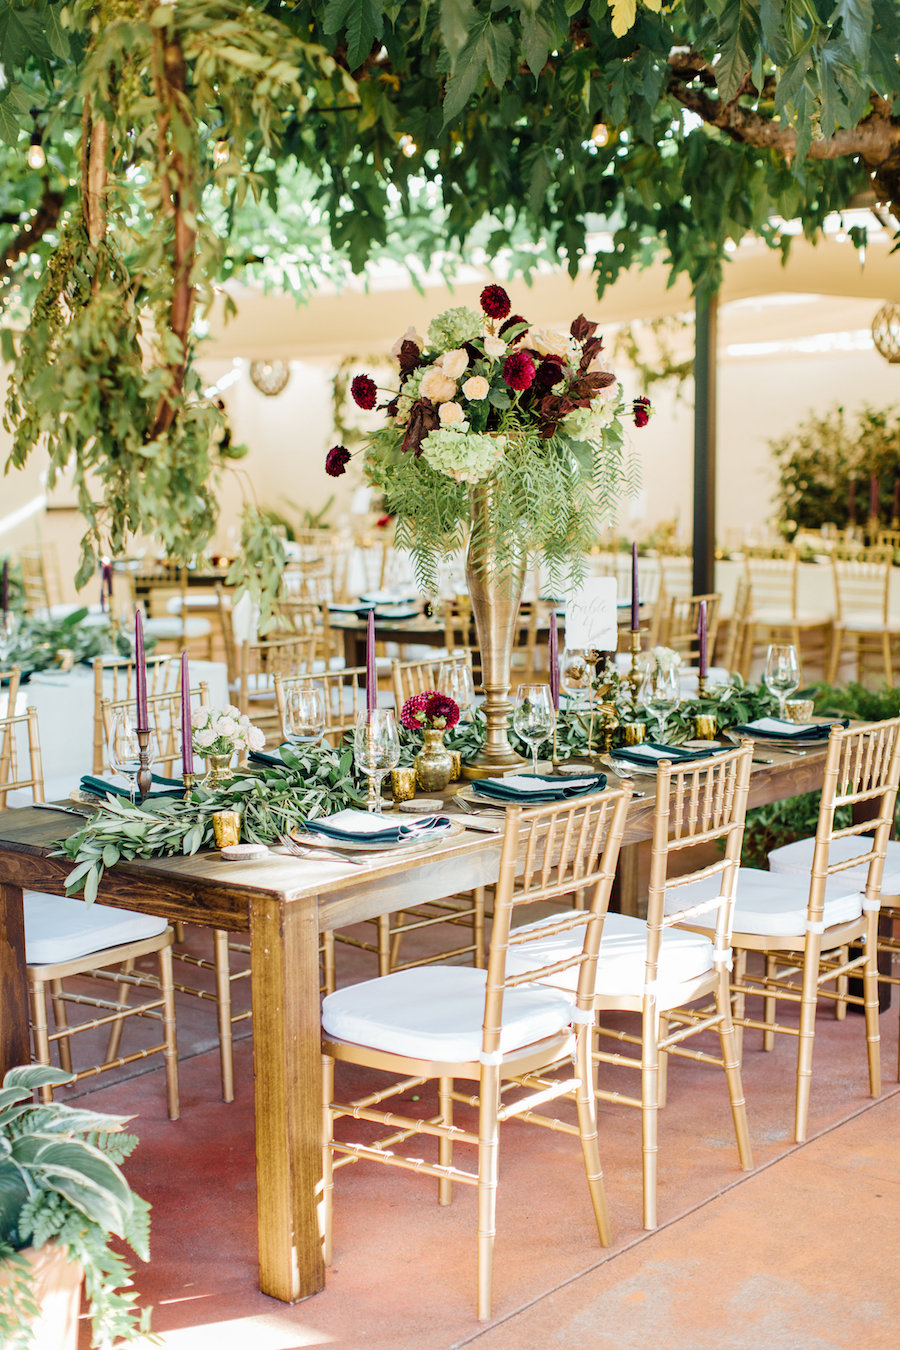 Chic Jewel-Toned Styled Shoot Featured on California Wedding Day19.jpg